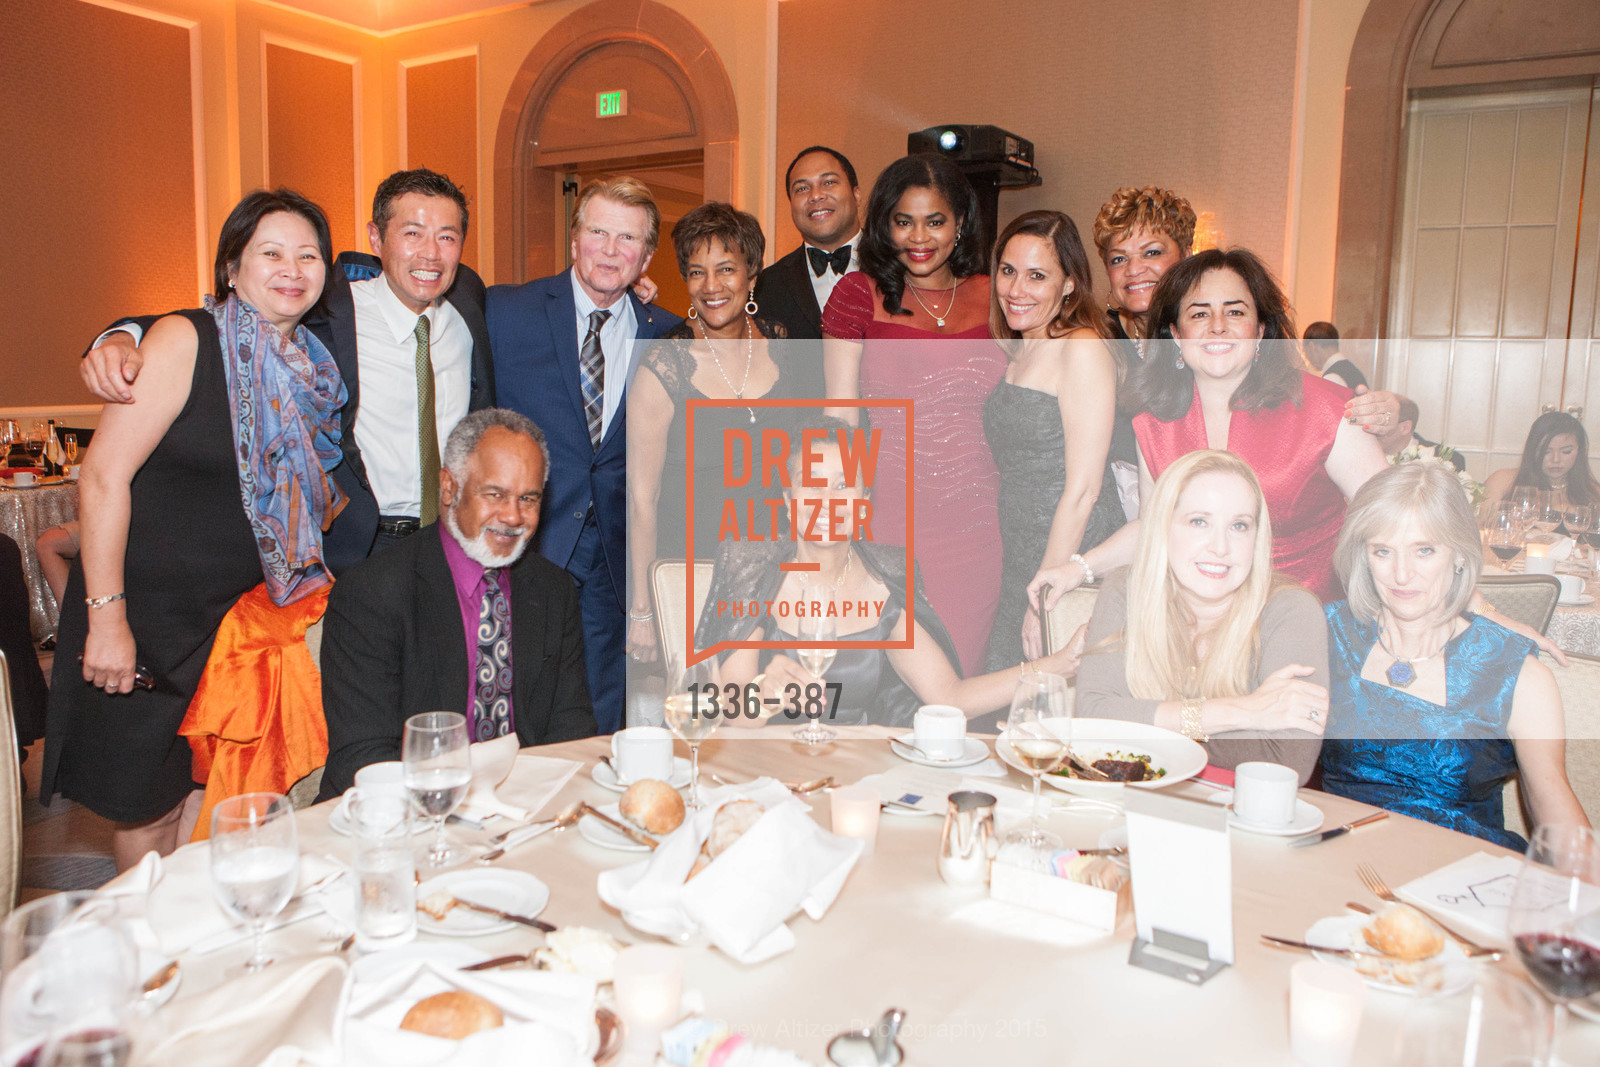 Keilani Tom, Marc Loupe, Ron Buckhammer, Carol Batte, Anette Harris, Cornell Toney, Ayanna Jenkins-Toney, LaTonya Lawson, PJ Handeland, Ronald McDonald House 2015 Home Away From Home Gala, Four Seasons Hotel San Francisco, Grand Ballroom. 757 Market St, October 16th, 2015,Drew Altizer, Drew Altizer Photography, full-service agency, private events, San Francisco photographer, photographer california